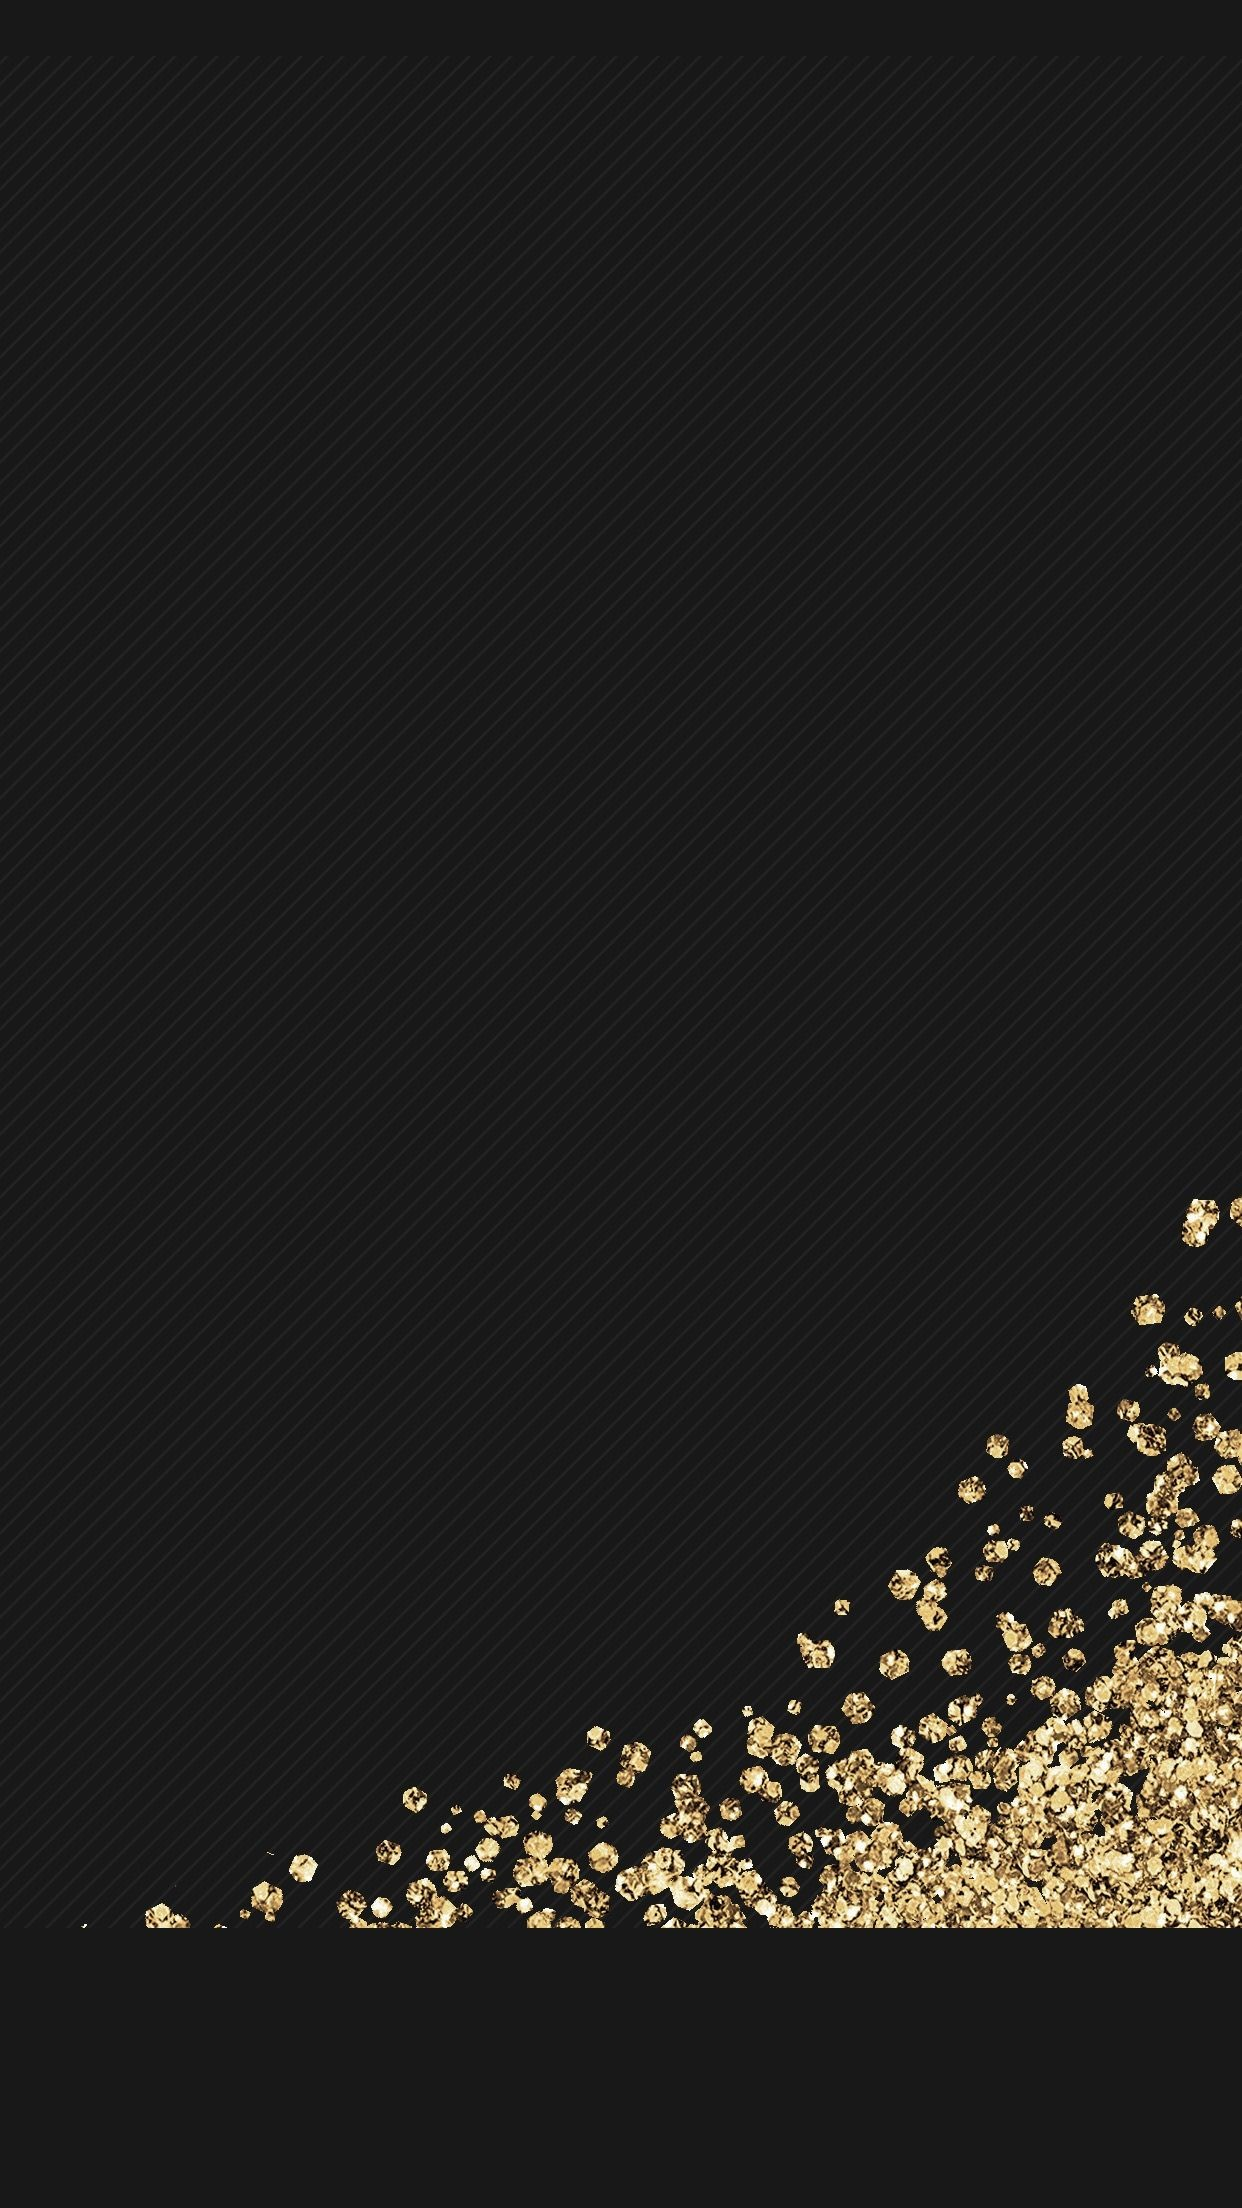 Res: 1242x2208, black, gold, glitter, wallpaper, background, iphone, android, HD